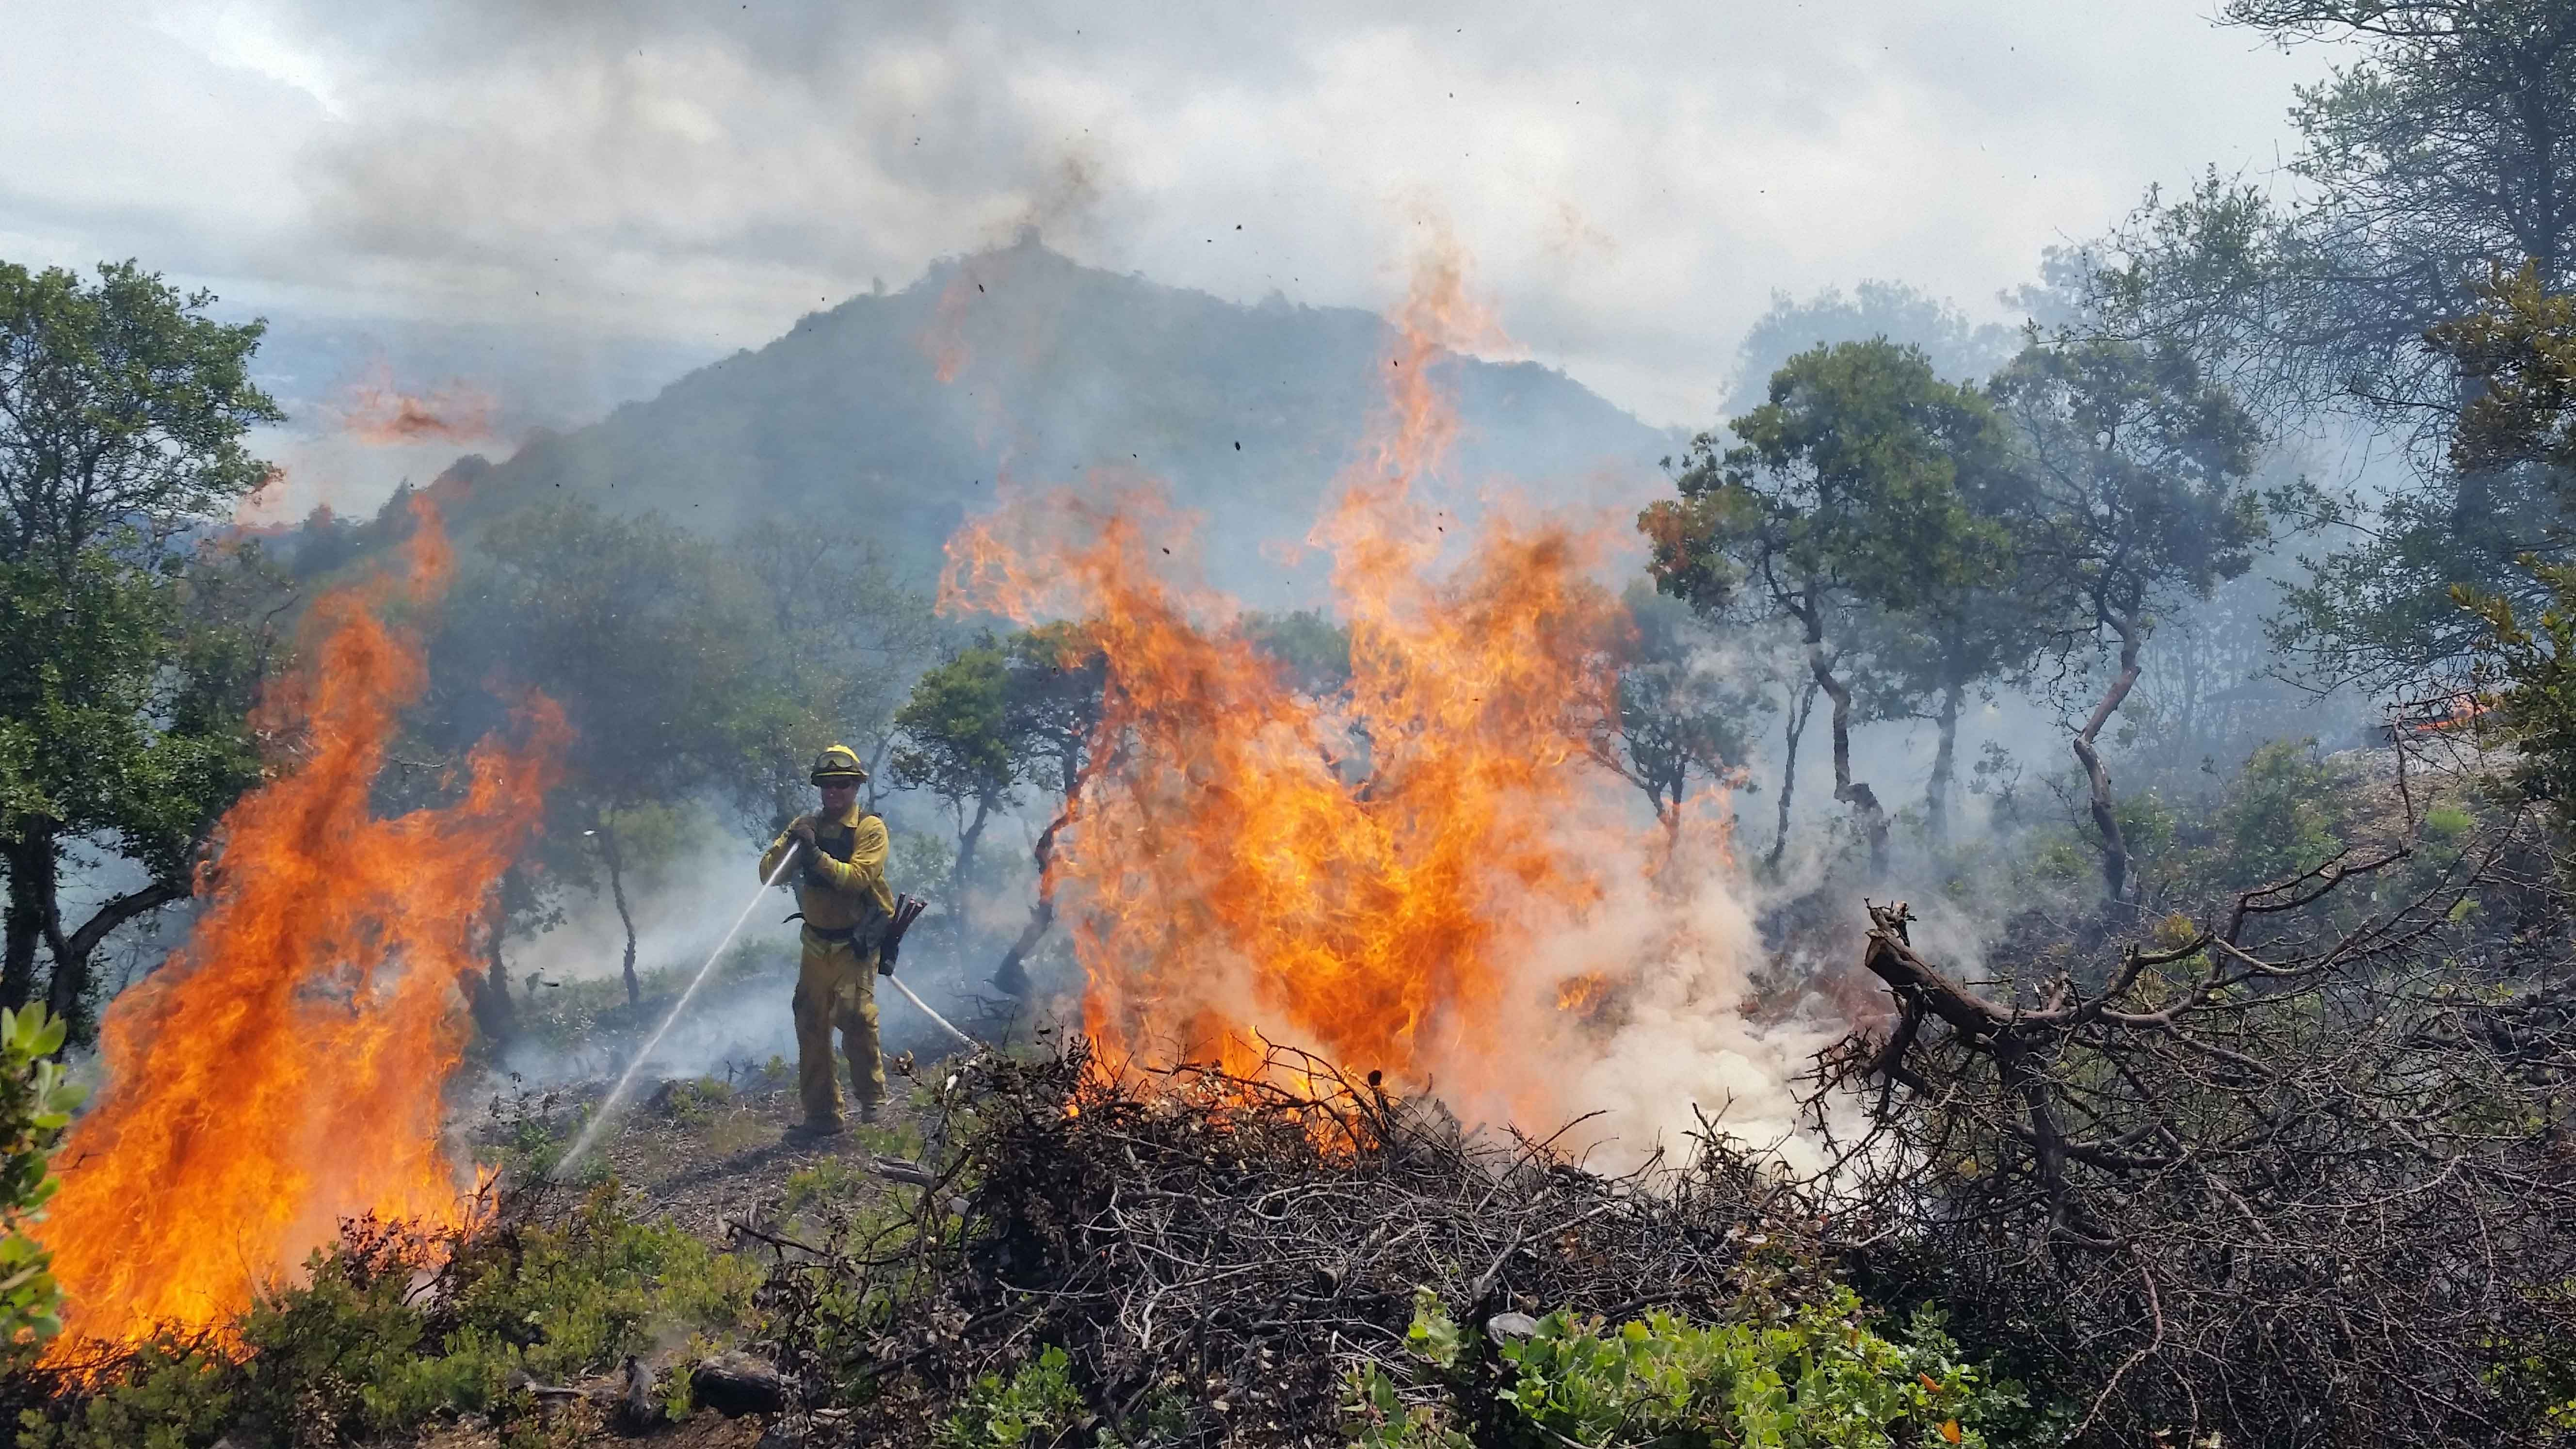 On Mt. Tam, a prescribed burn decreases fuel loads in chaparral and scrub oak communities.